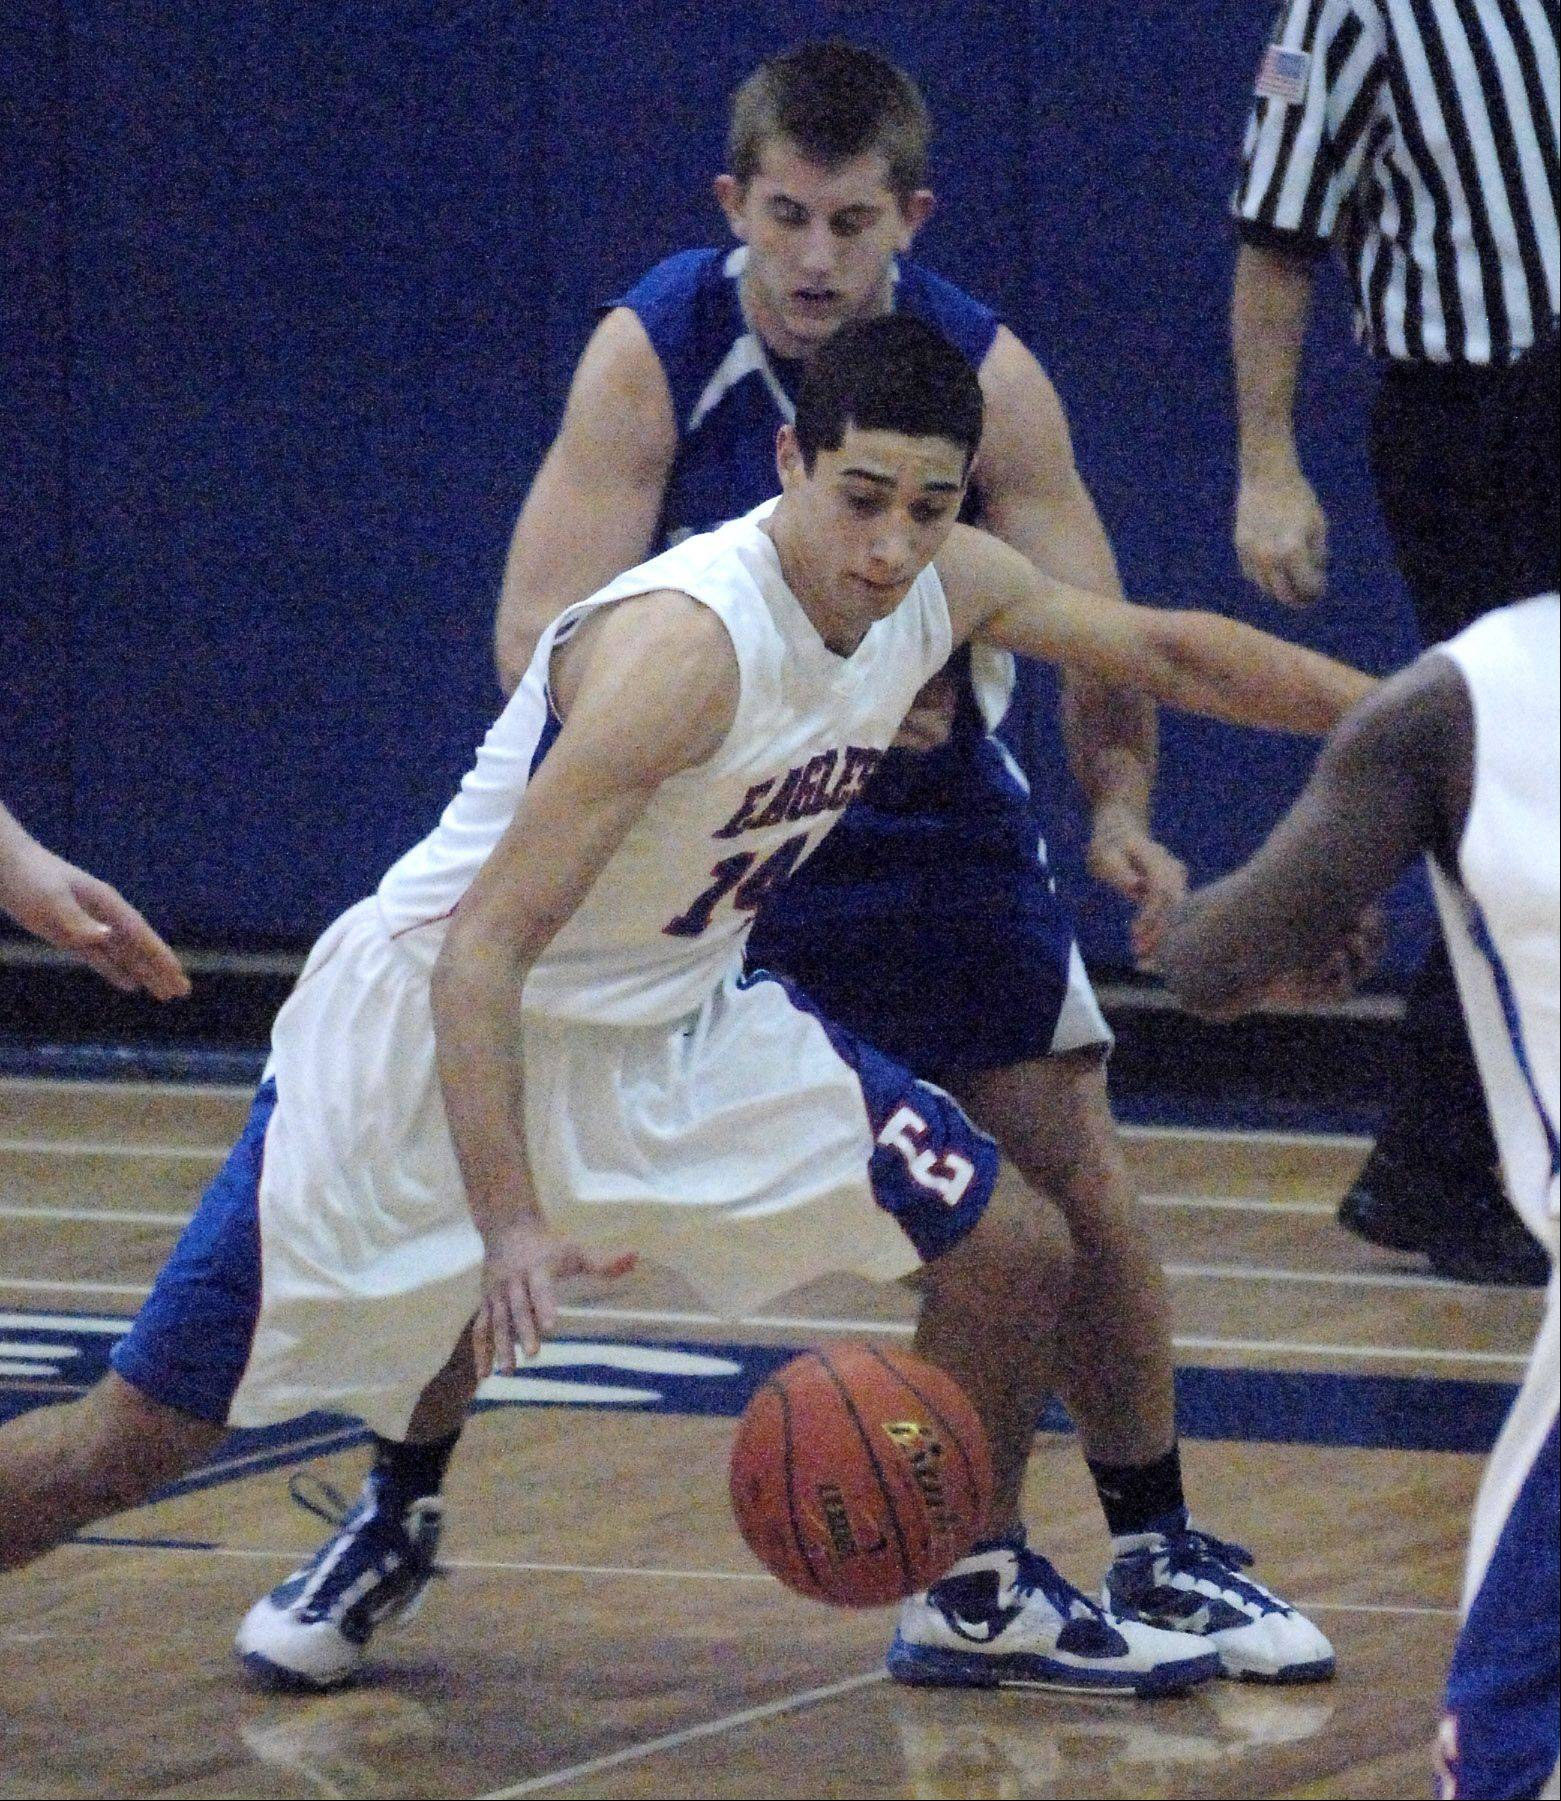 John Androus chases down a loose ball against Vernon Hills during his senior season at Lakes.